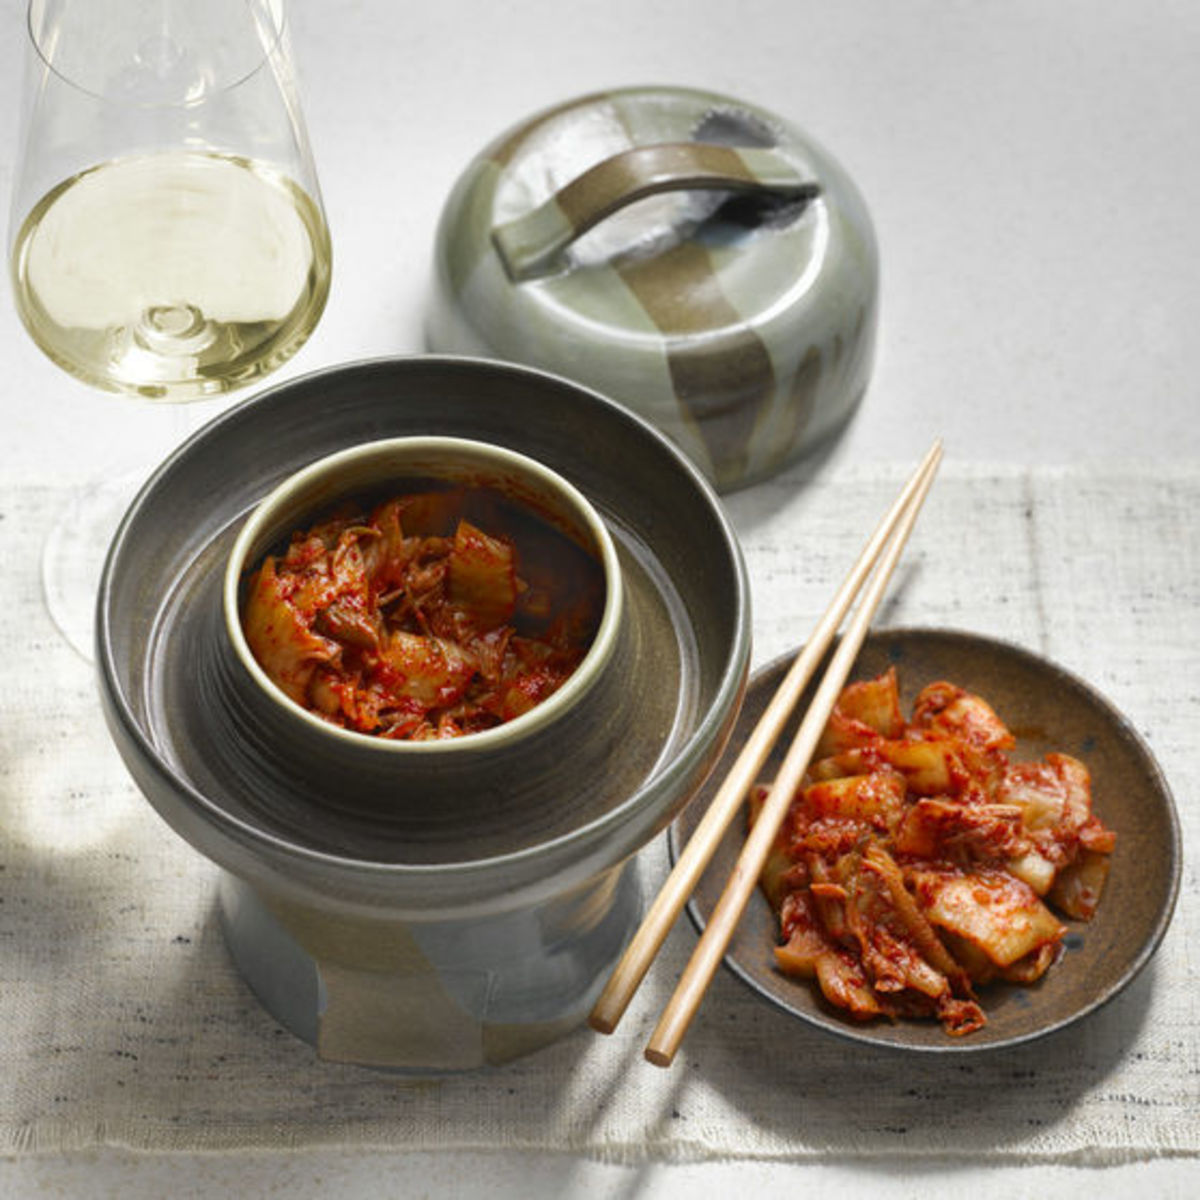 The picture shows the dish Kimchi and a glass of red wine.